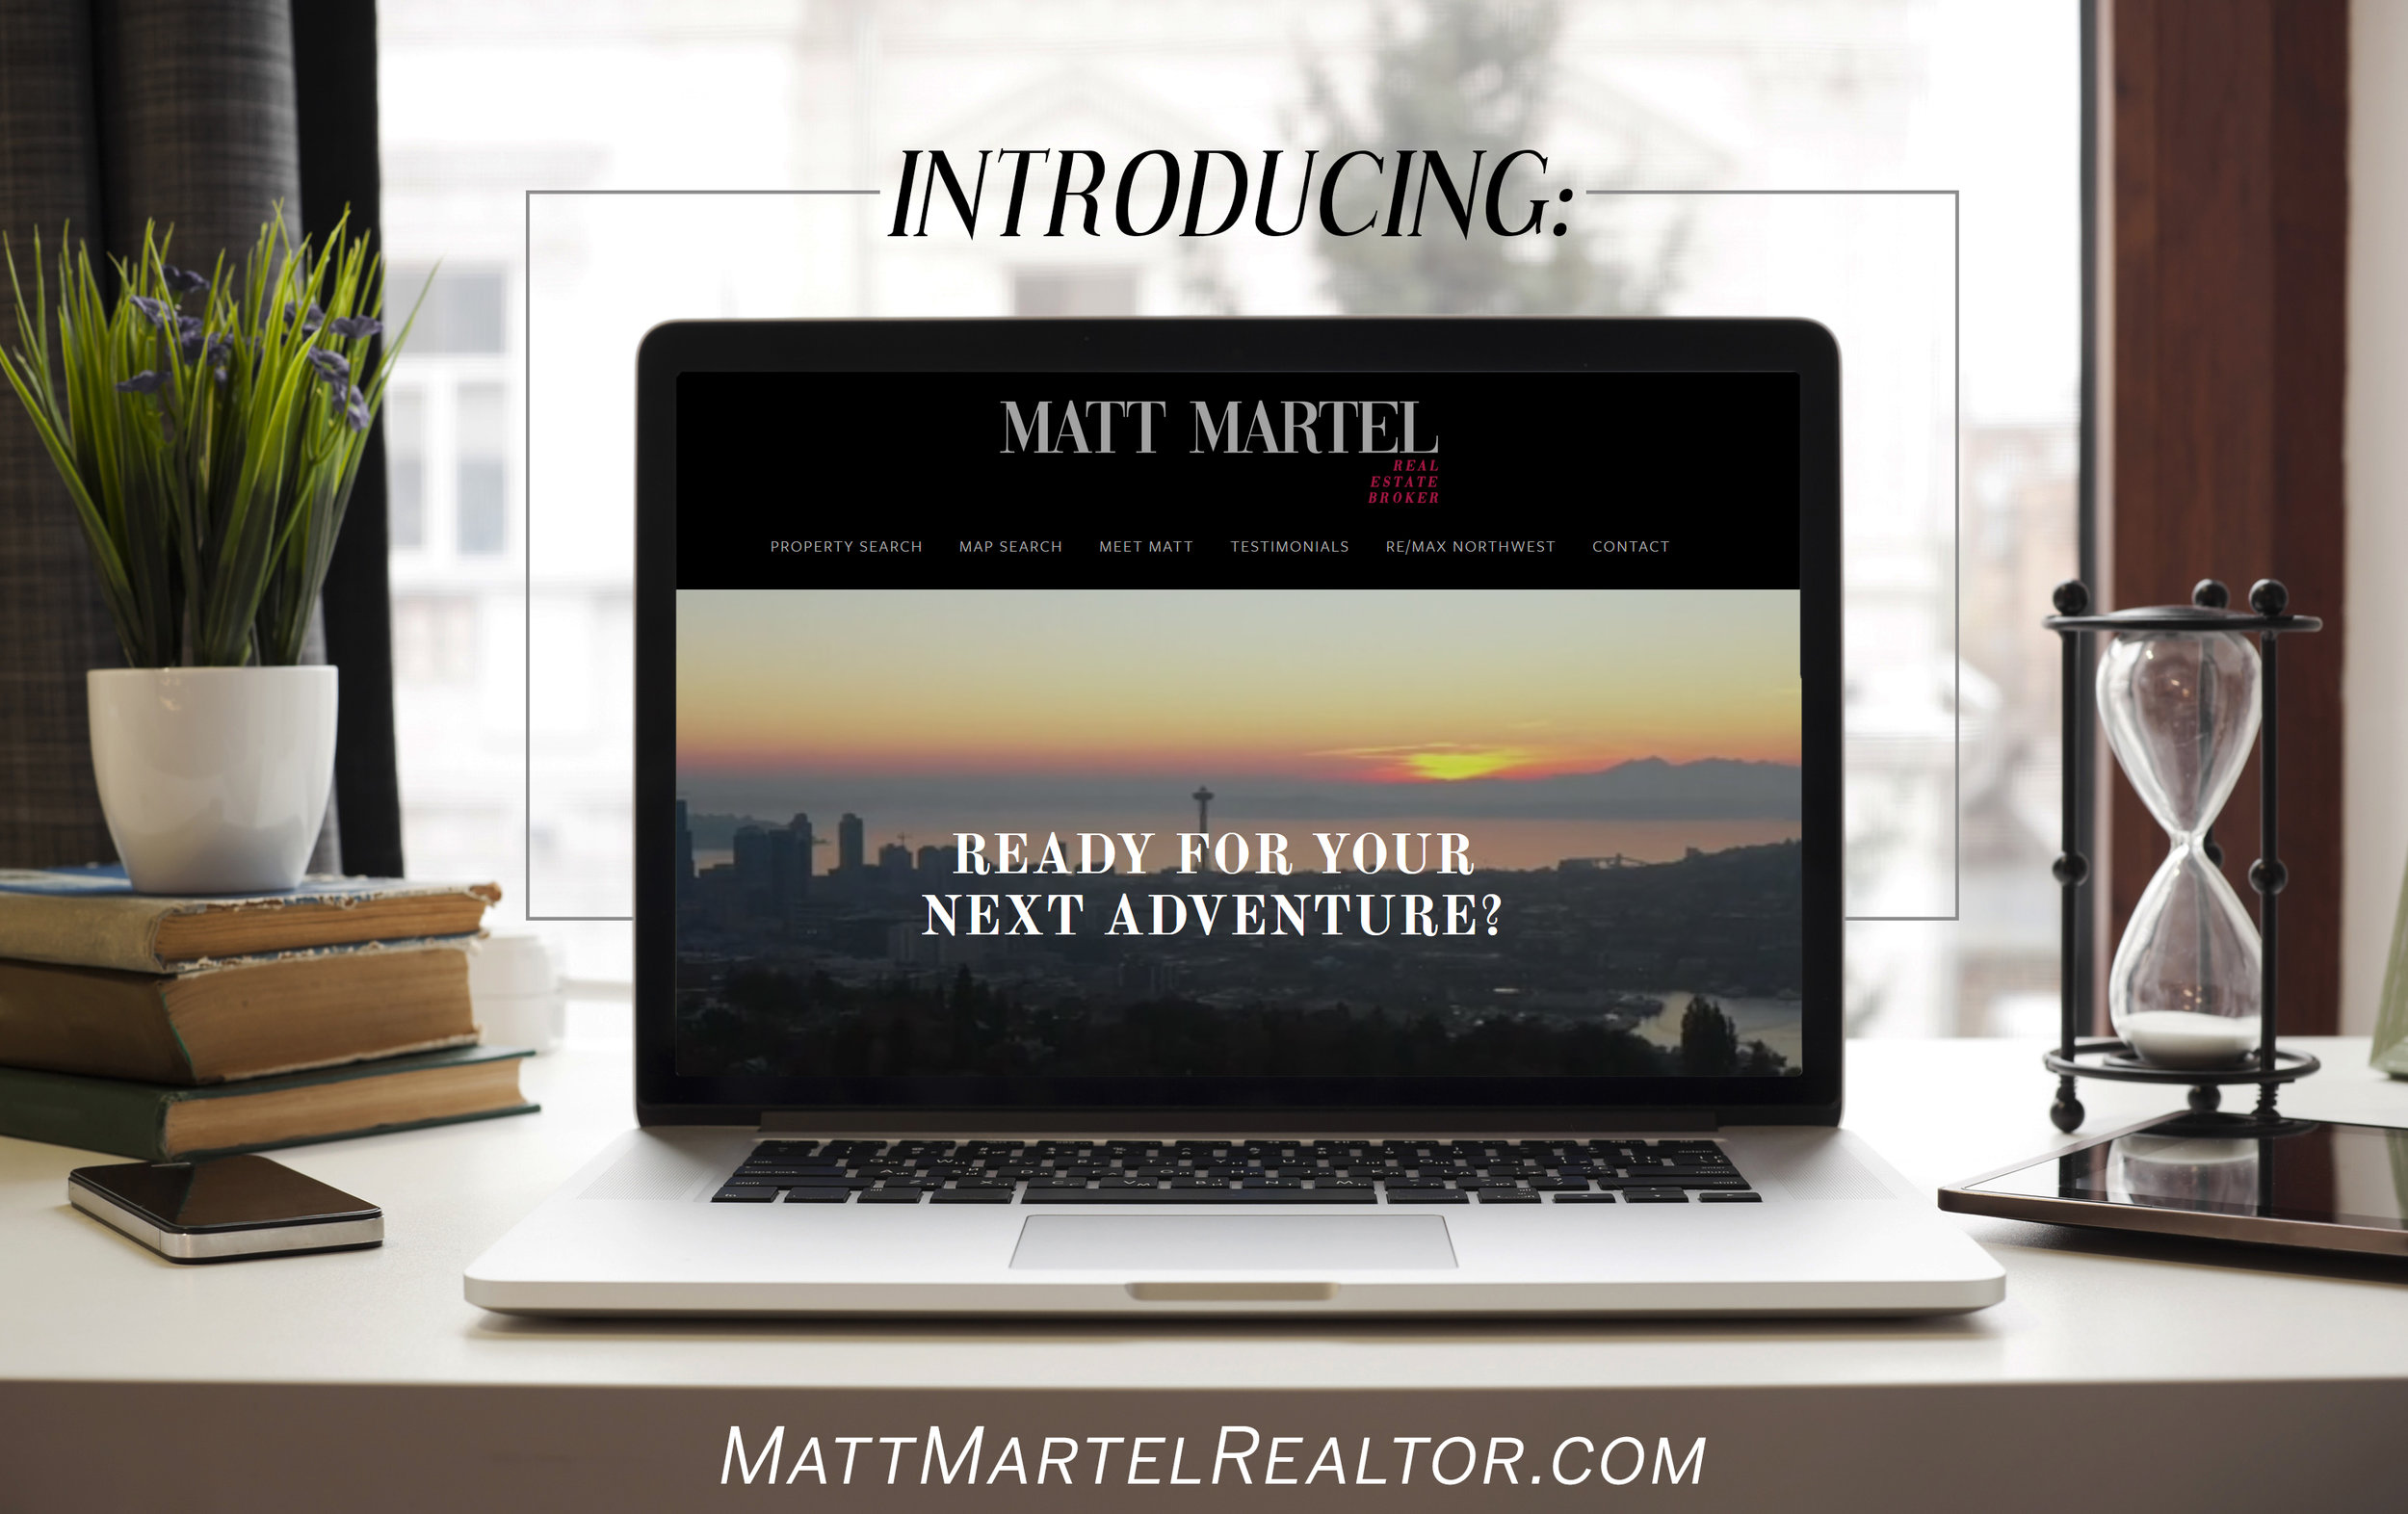 Website for Matt Martel, RE/MAX Northwest Real Estate Broker